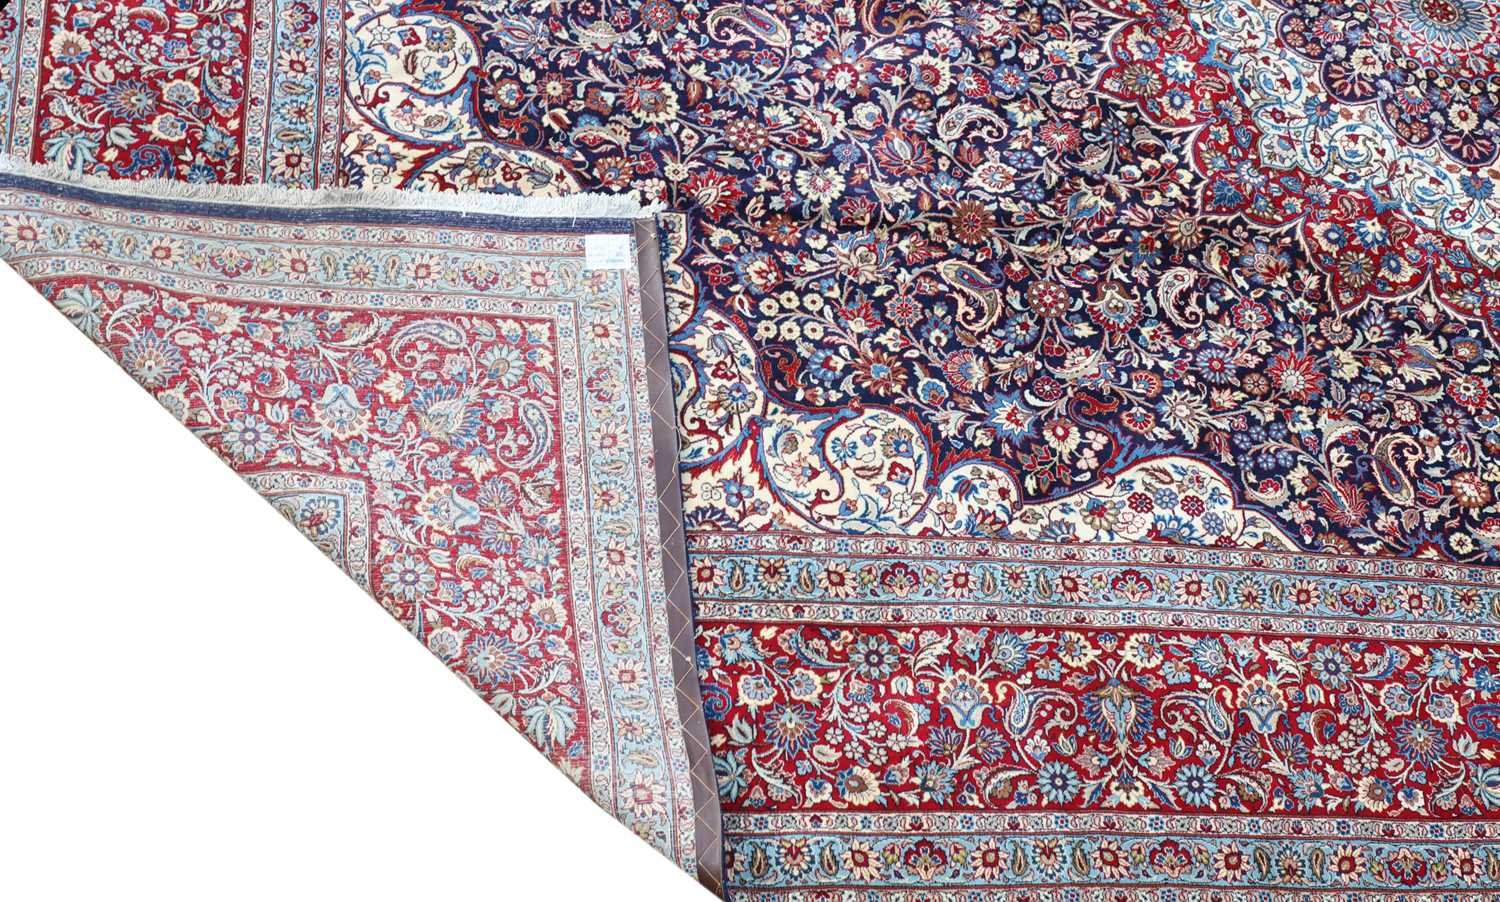 A large Persian Khorassan carpet, - Image 4 of 17